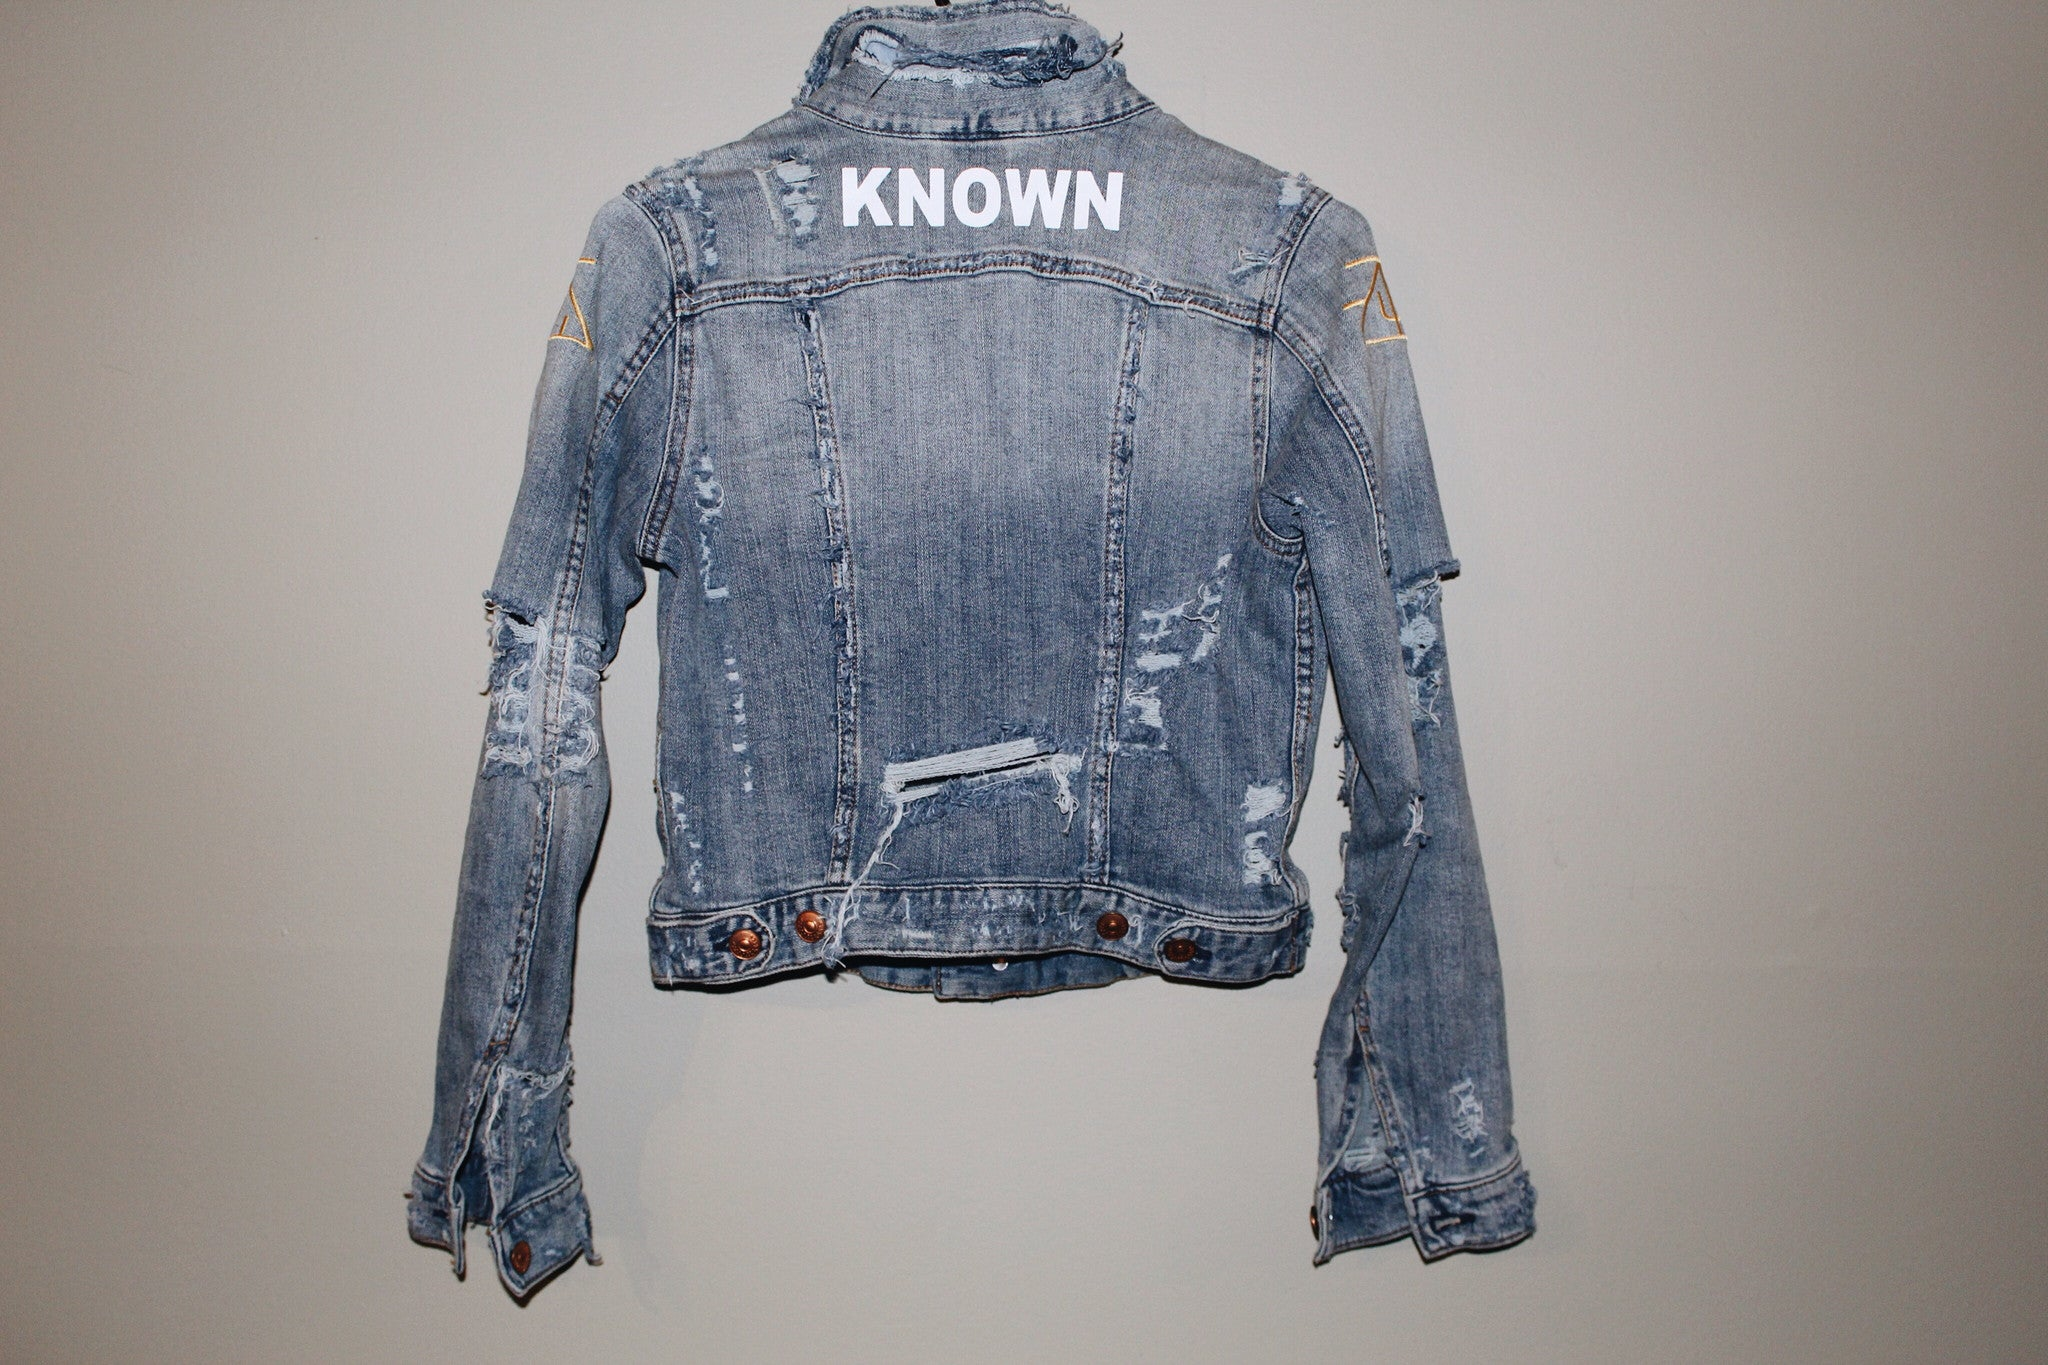 KNOWN Women's Distressed Denim Jacket I